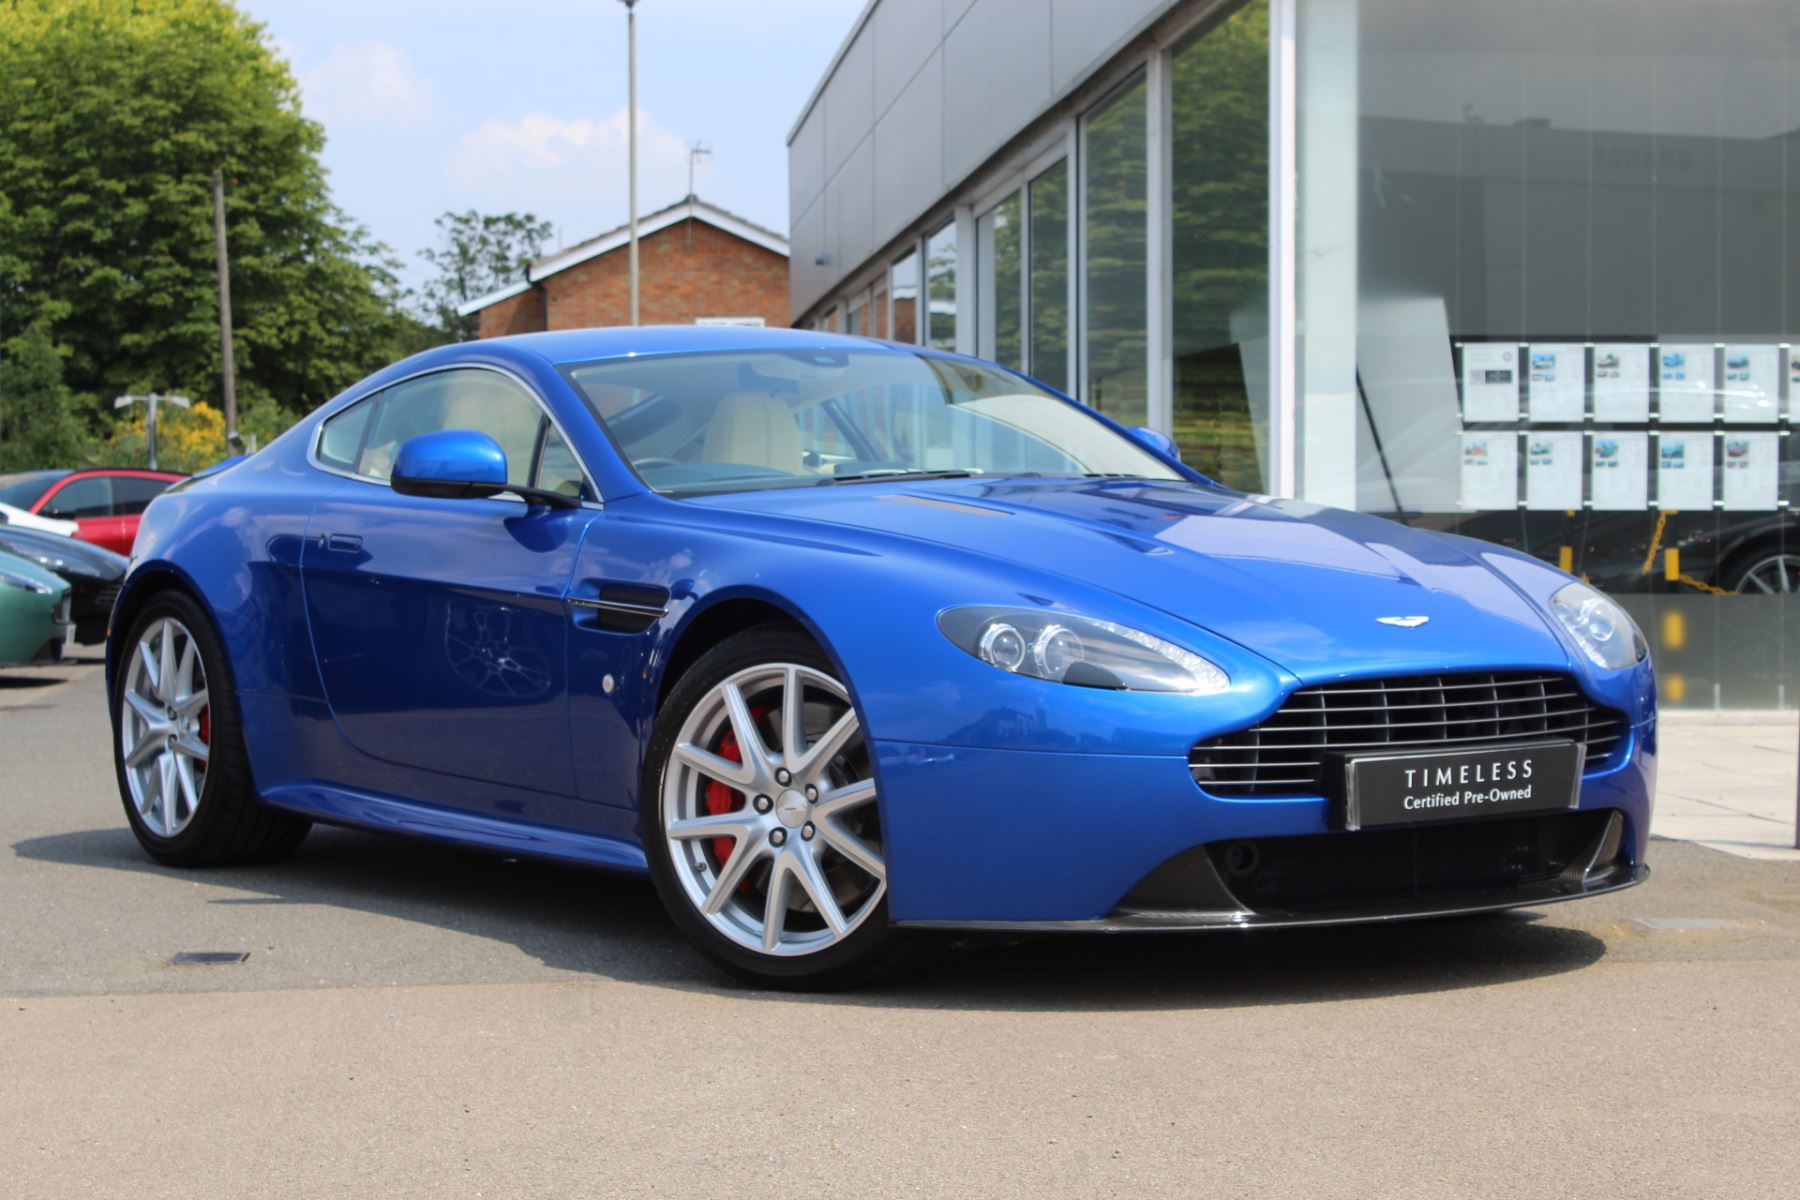 Aston Martin V8 Vantage S Coupe S 2dr    One Owner, rare Cobalt Blue with Cream Leather  4.7 3 door Coupe